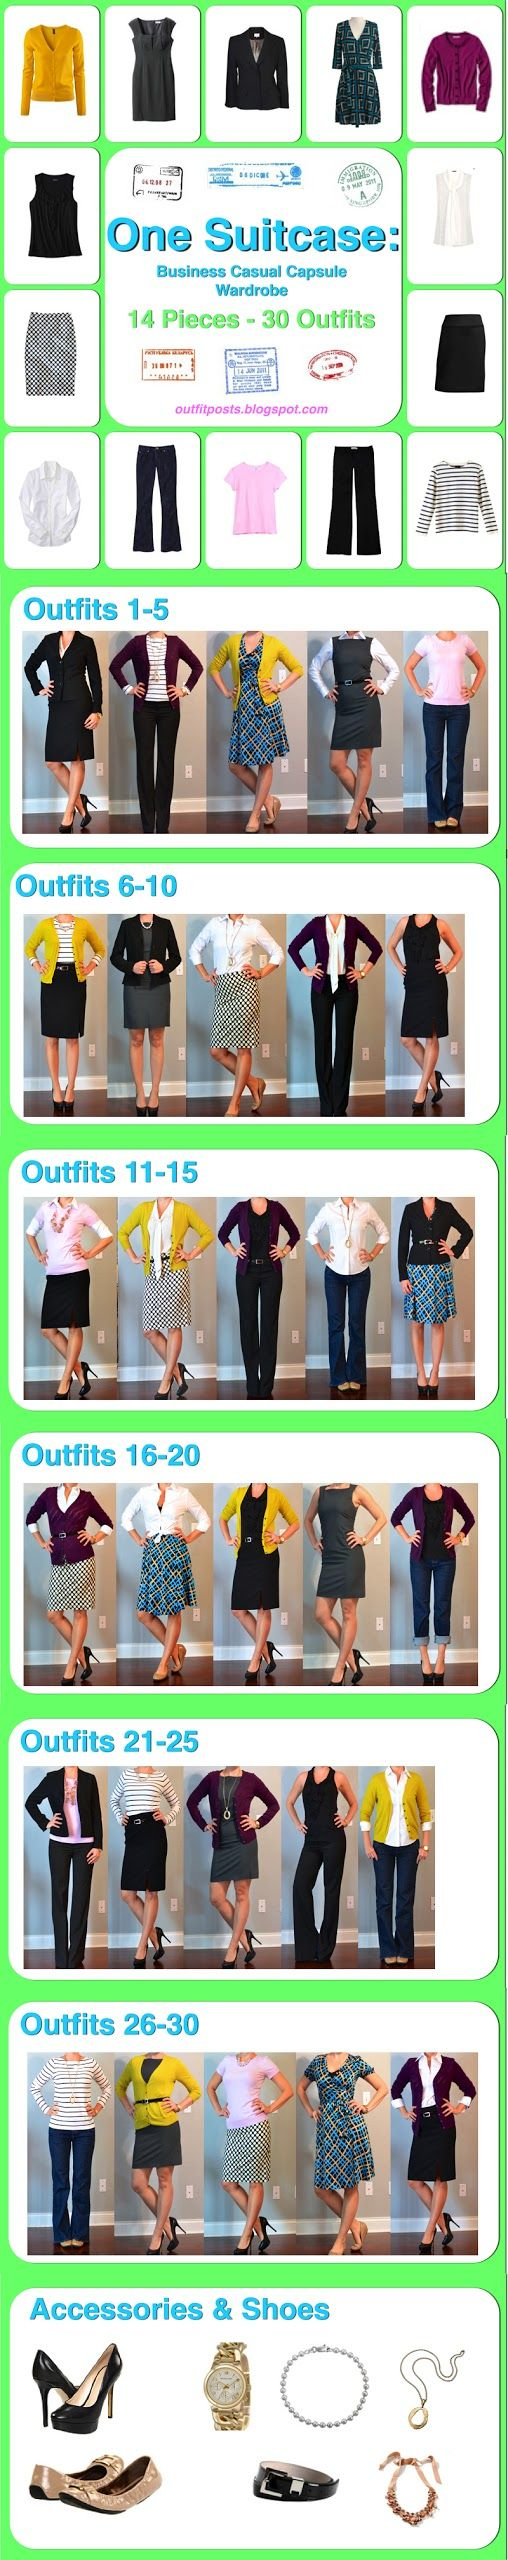 Outfit Posts: one suitcase: business casual capsule wardrobe 14 pieces, 30 outfits!  **new favorite blog - she actually tells you where her items came from!